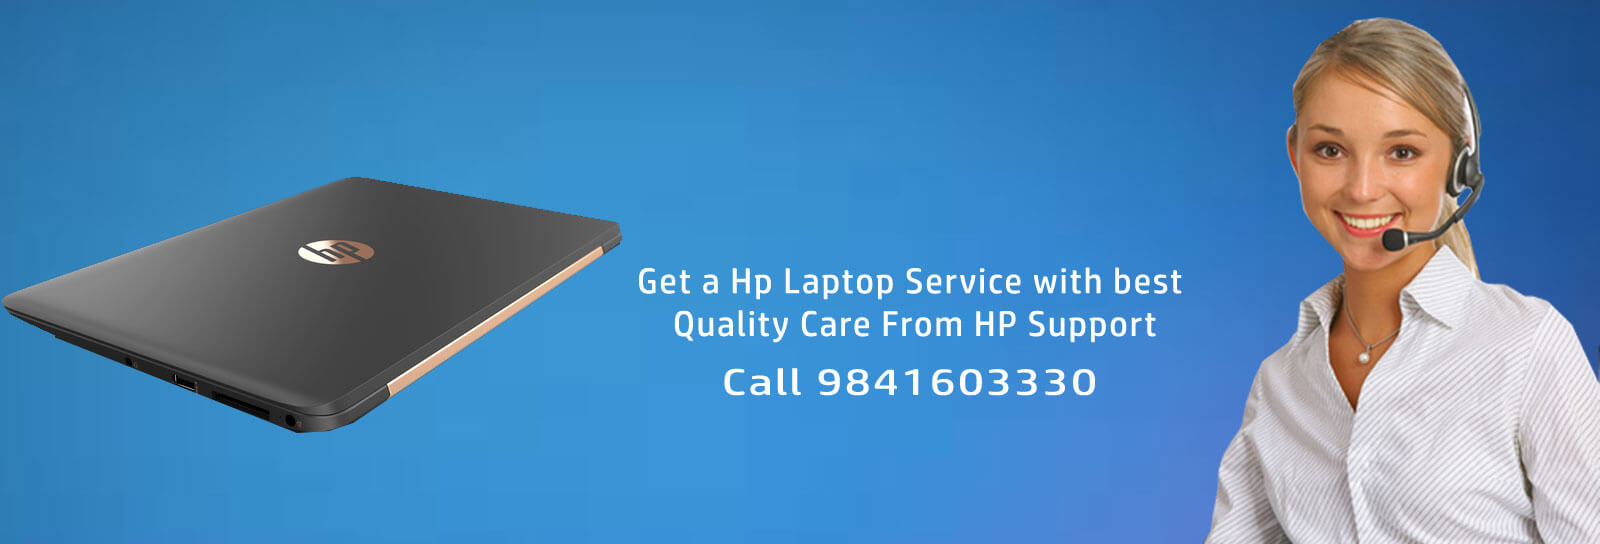 hp laptop service center in coimbatore